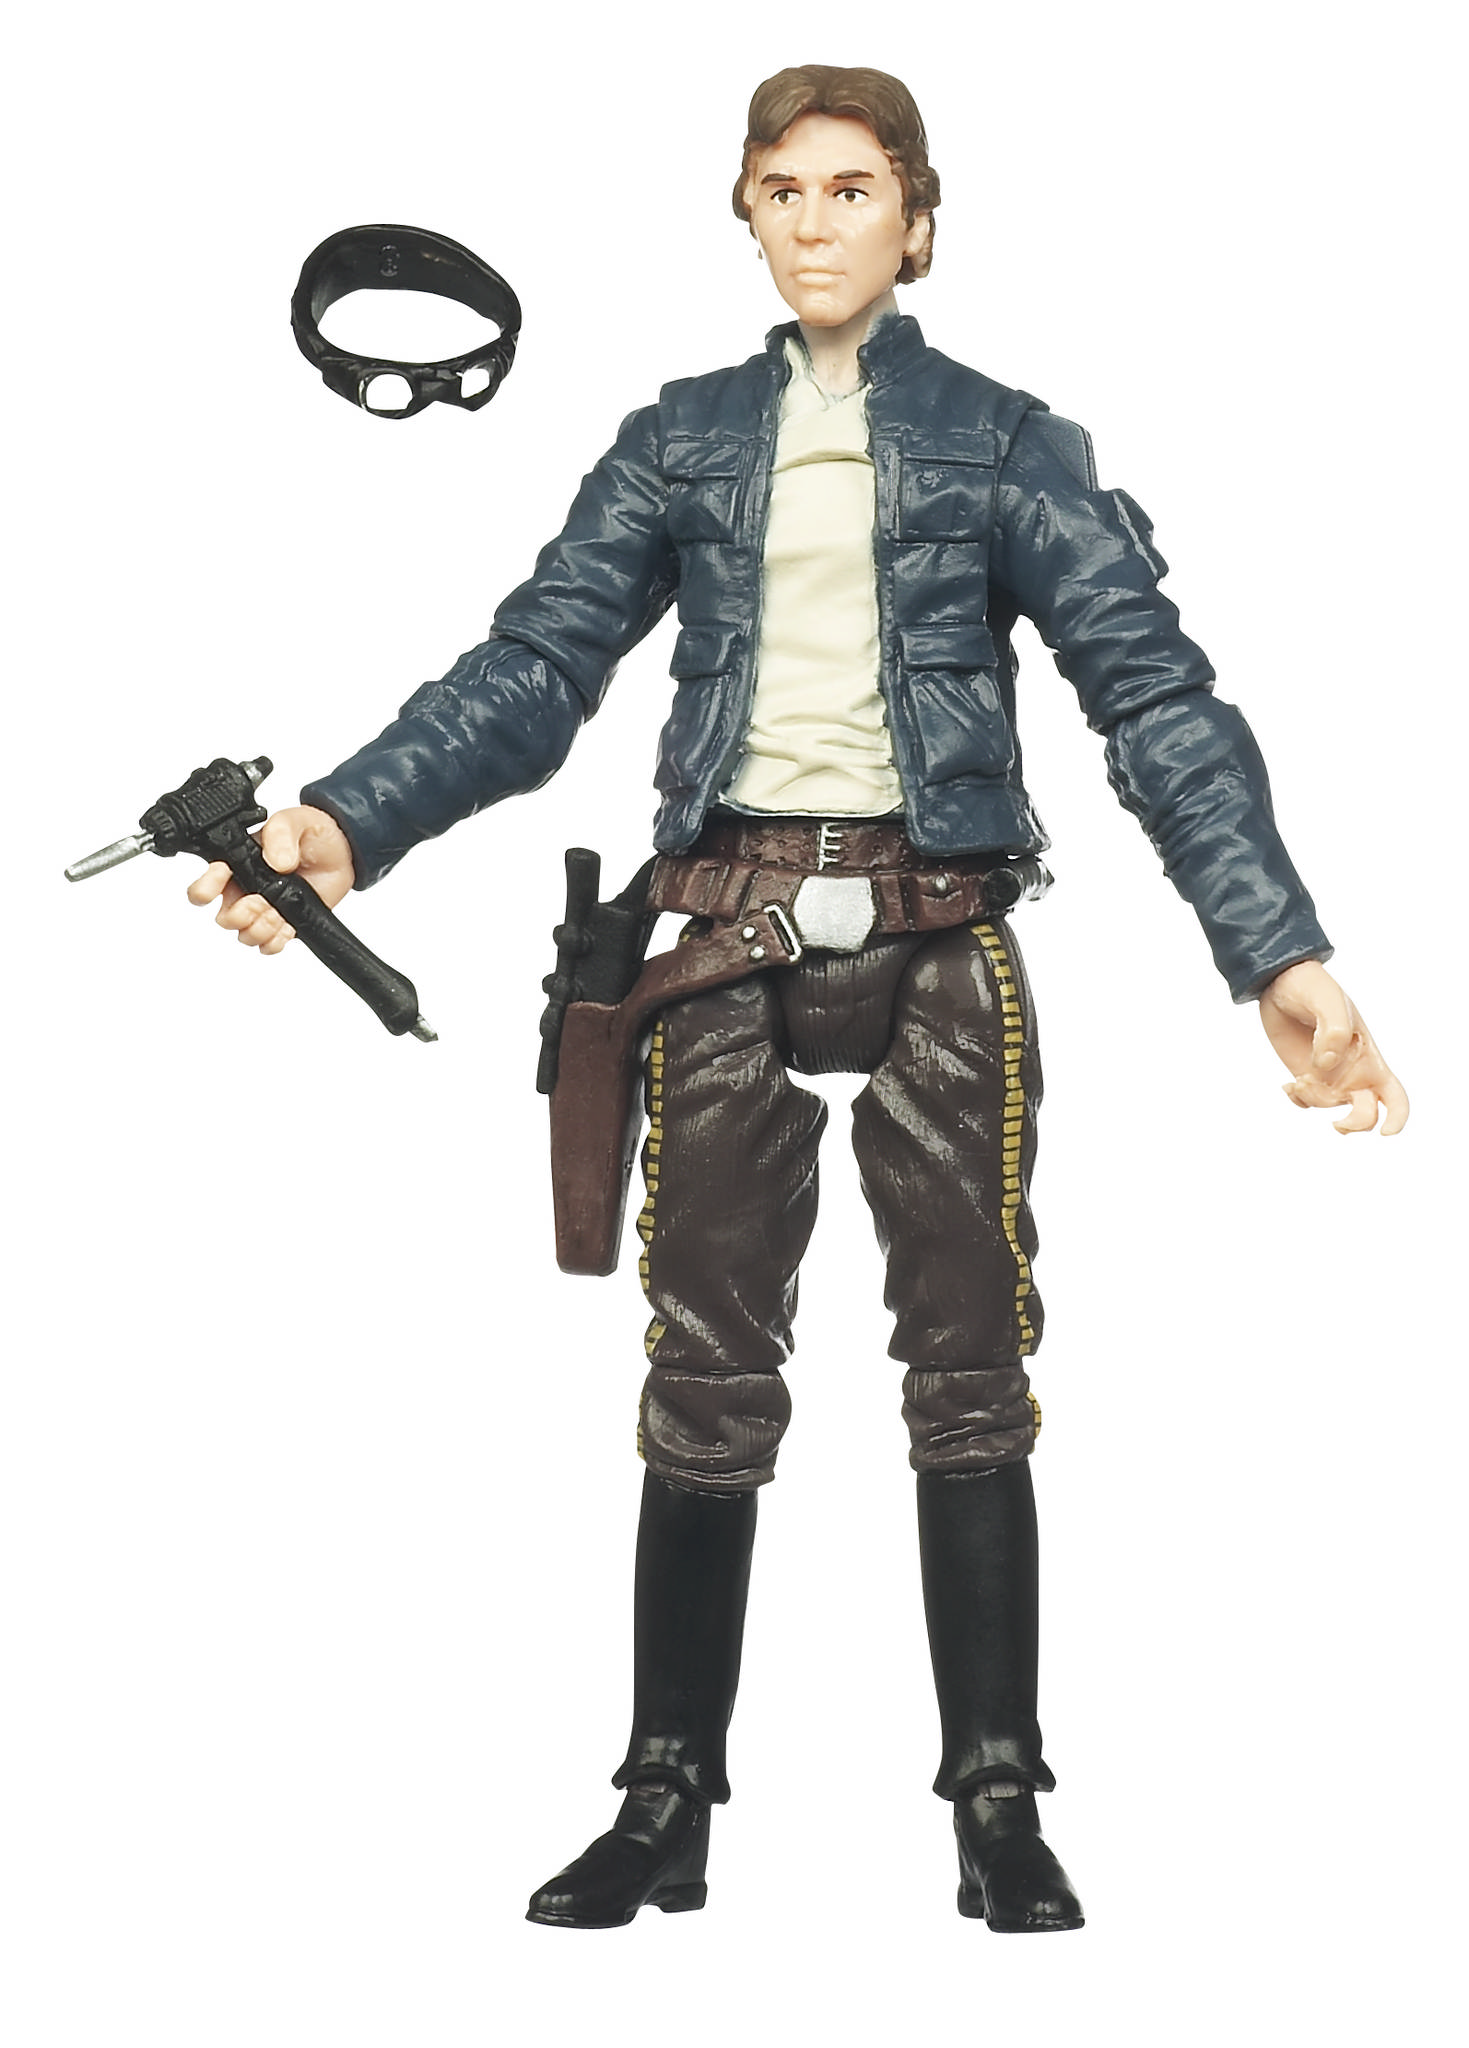 STAR WARS THE VINTAGE COLLECTION 3.75 INCH HAN SOLO Figure